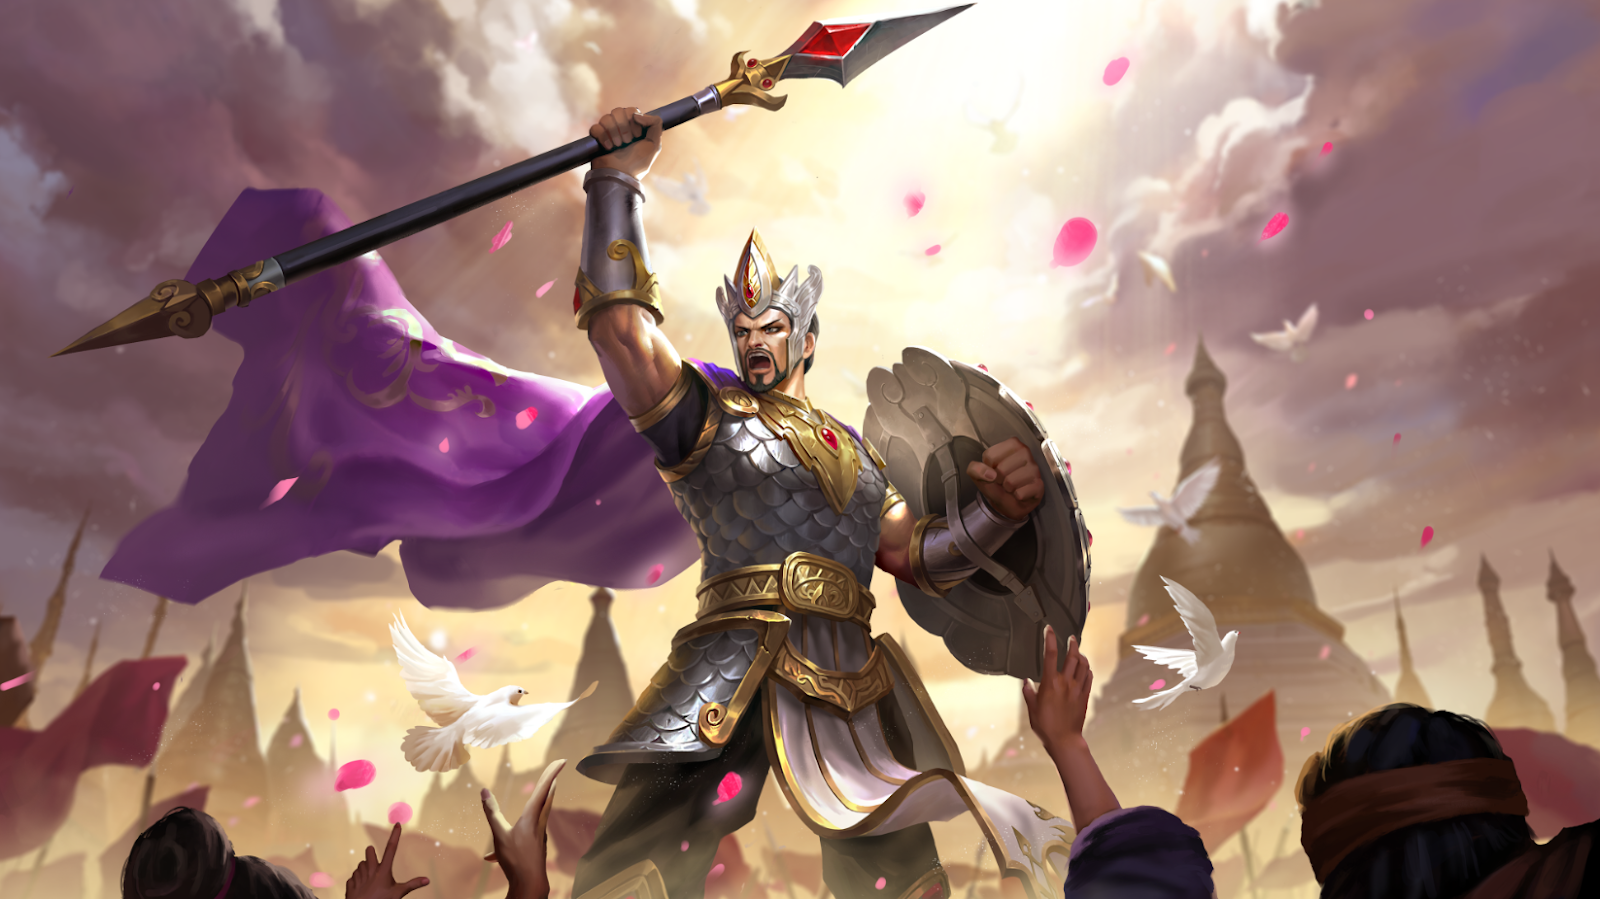 Kumpulan Wallpaper HD Mobile Legends Part V